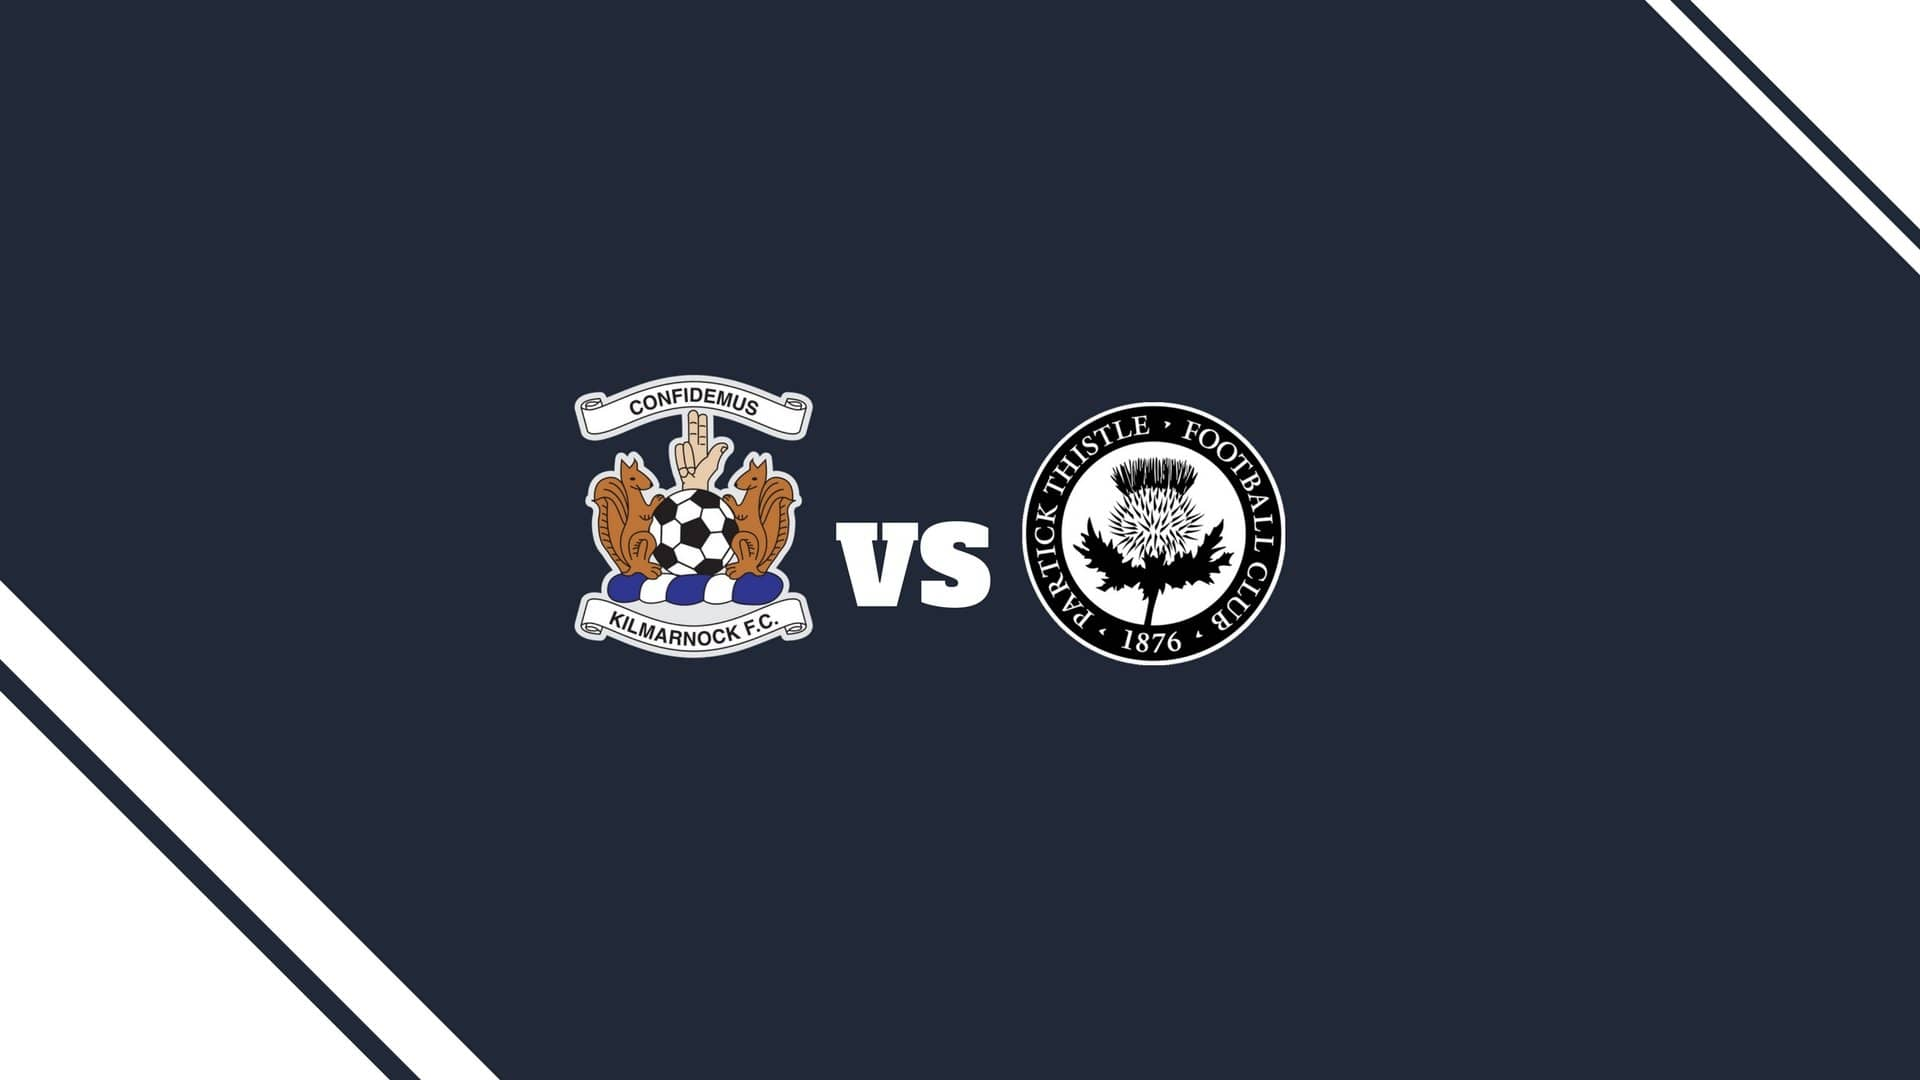 Matchday Hospitality VS Partick Thistle - SAT 9th Dec